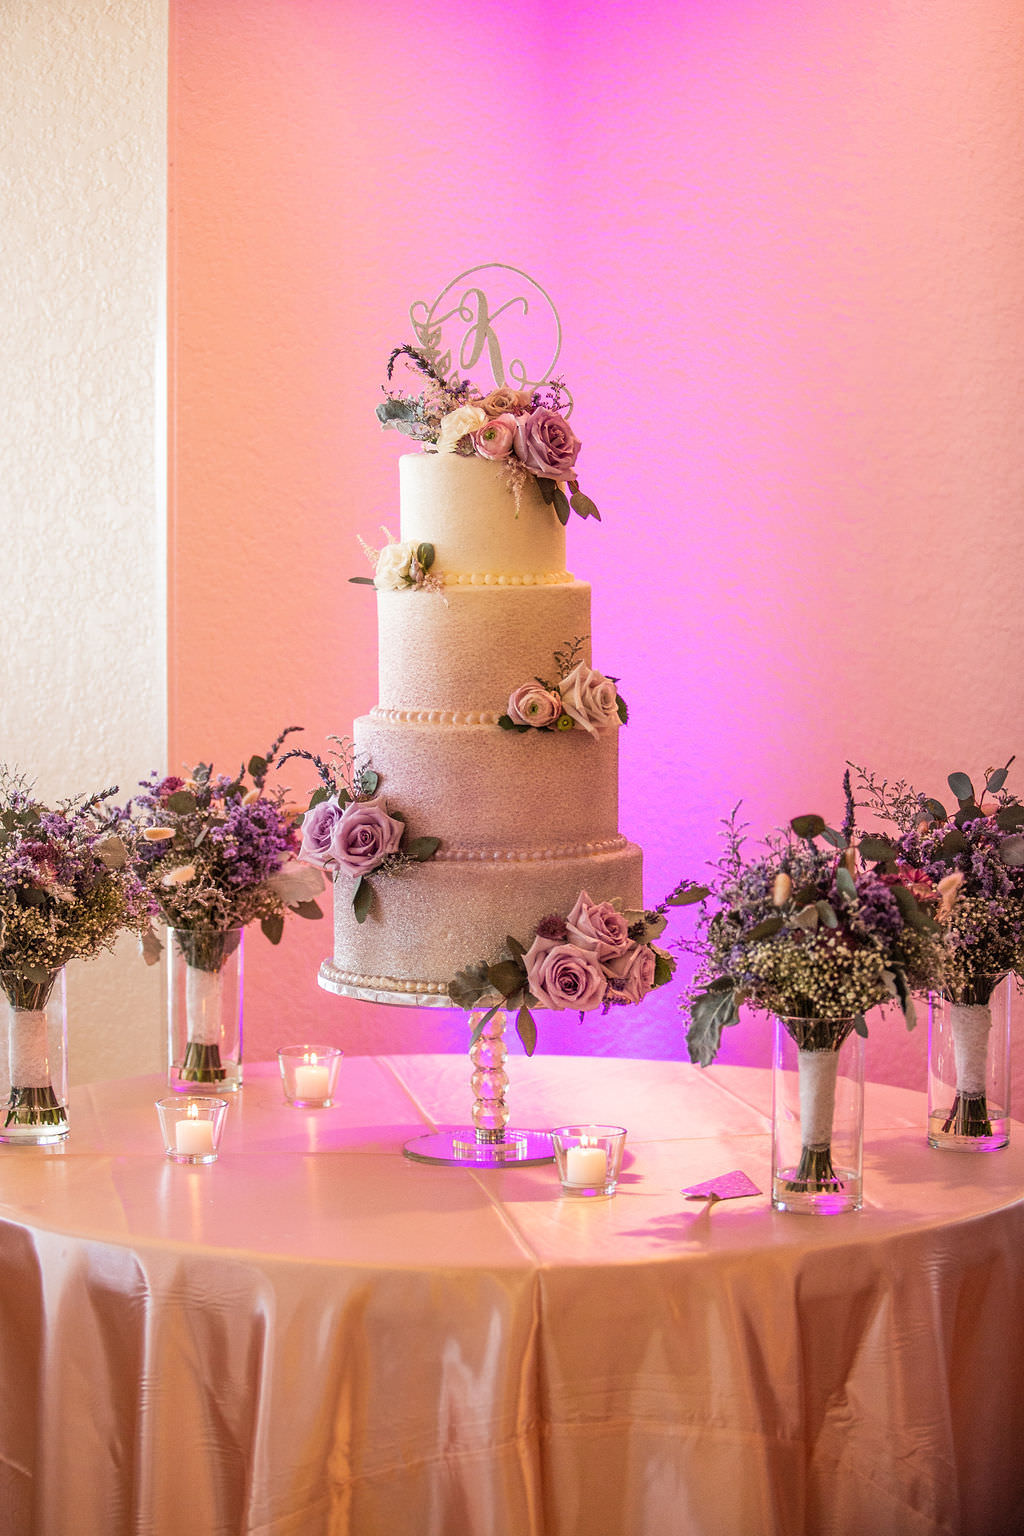 Elegant and Simple Four Tier White with Glitter Embellishments Wedding Cake, Lilac and Blush Pink Roses, Custom Laser Cut Monogram Topper, Pink Uplighting | Tampa Bay Wedding Cake Bakery The Artistic Whisk